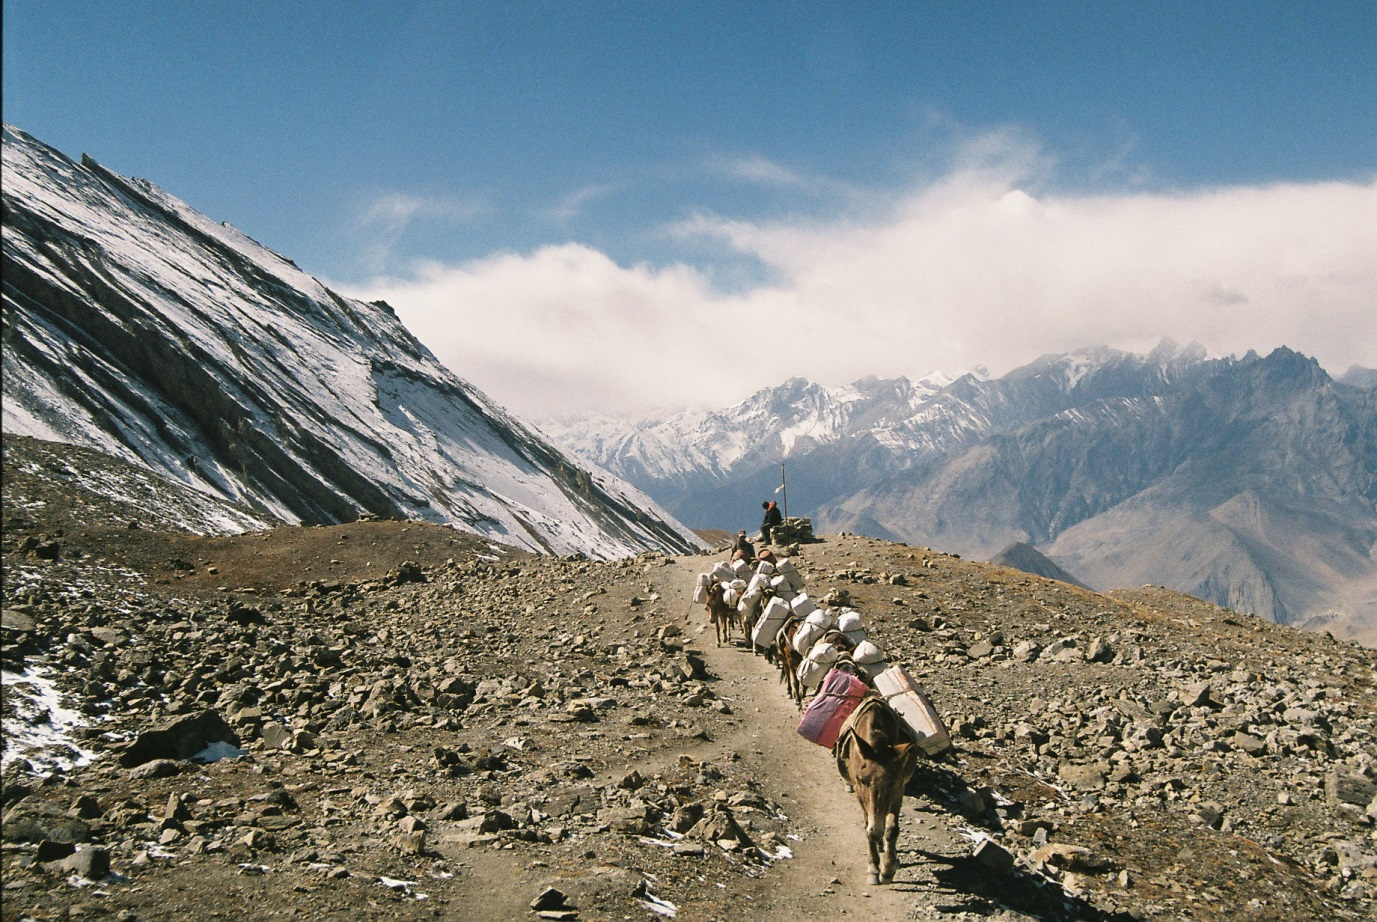 Go on an ethical adventure in Tibet